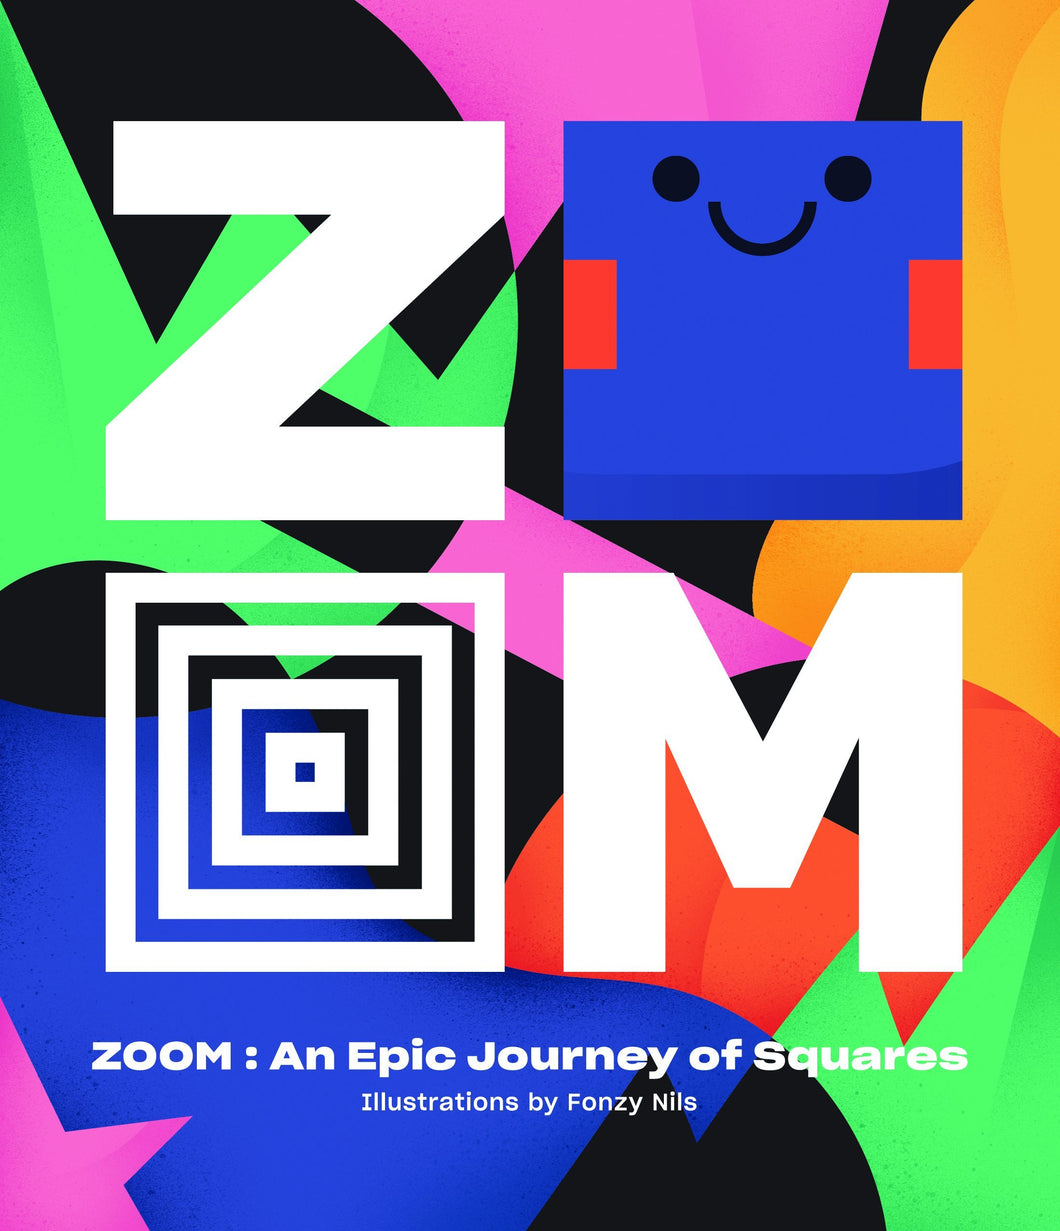 ZOOM - An Epic Journey Through Squares